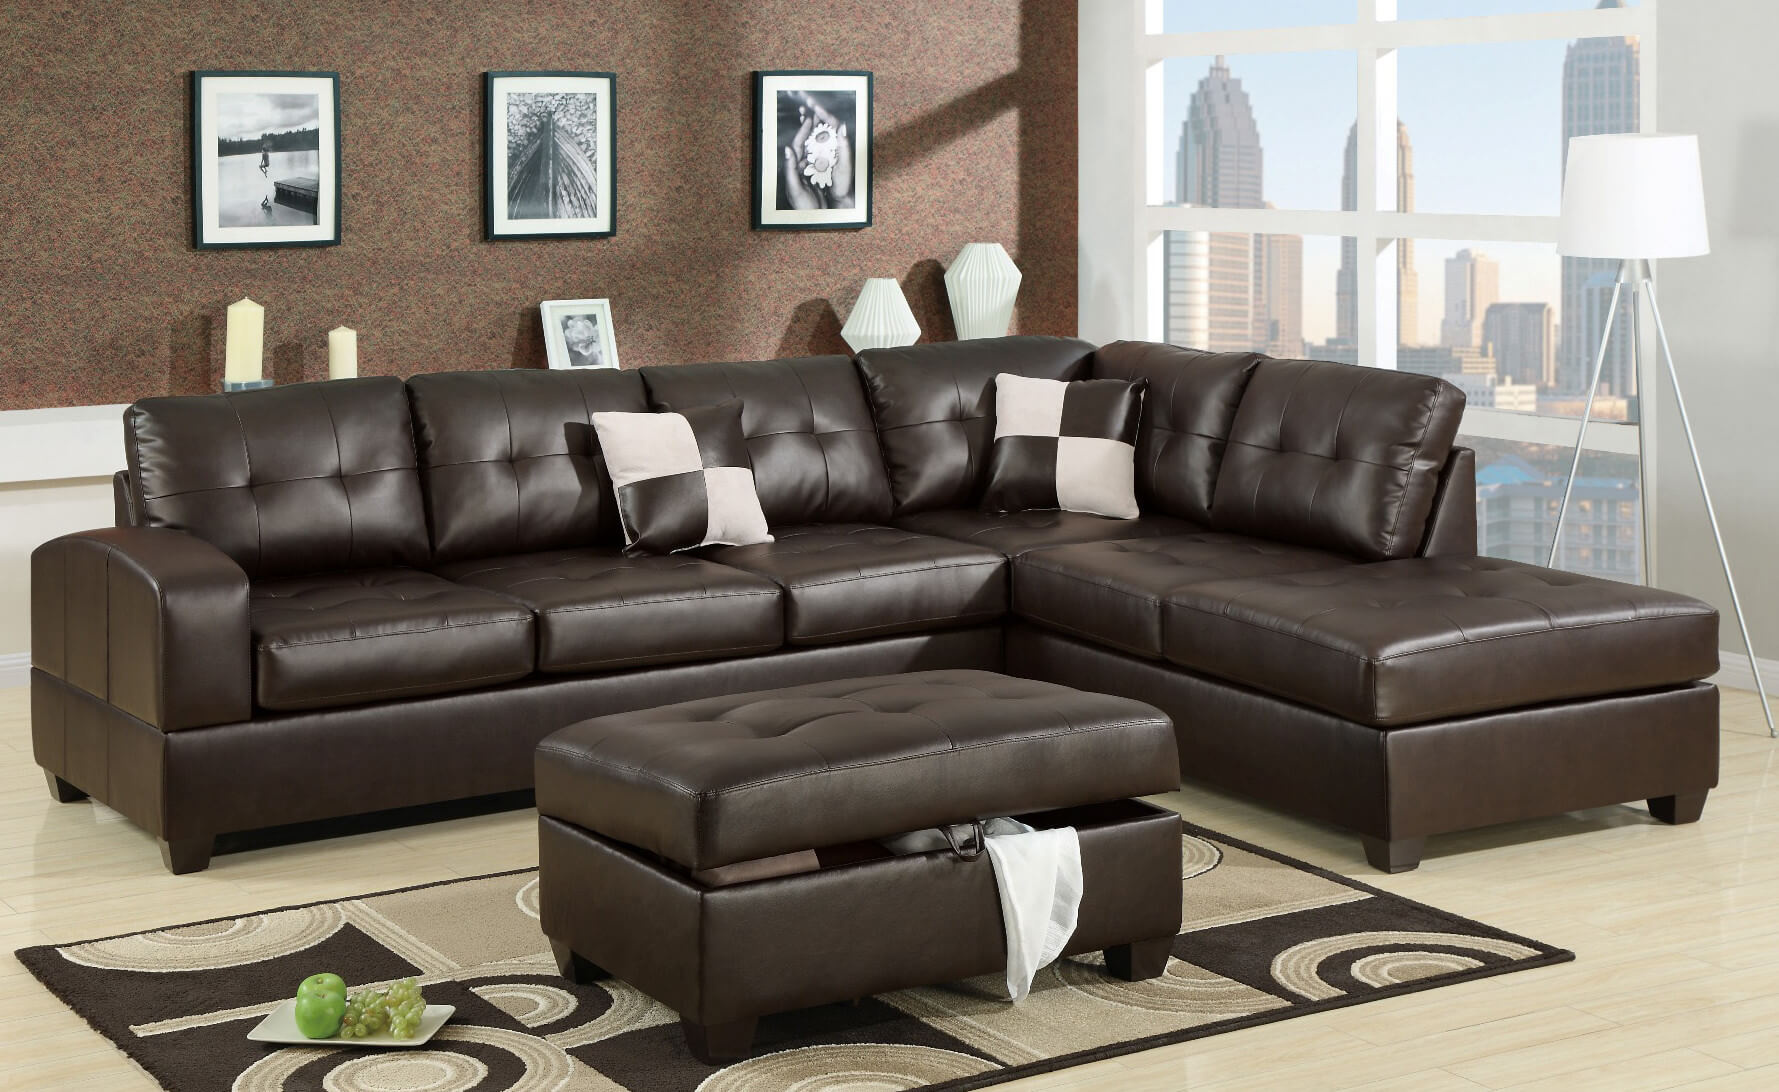 living back for burgundy with colorado home futuristic retro high tufted leather sofas furniture and style sectional room sofa